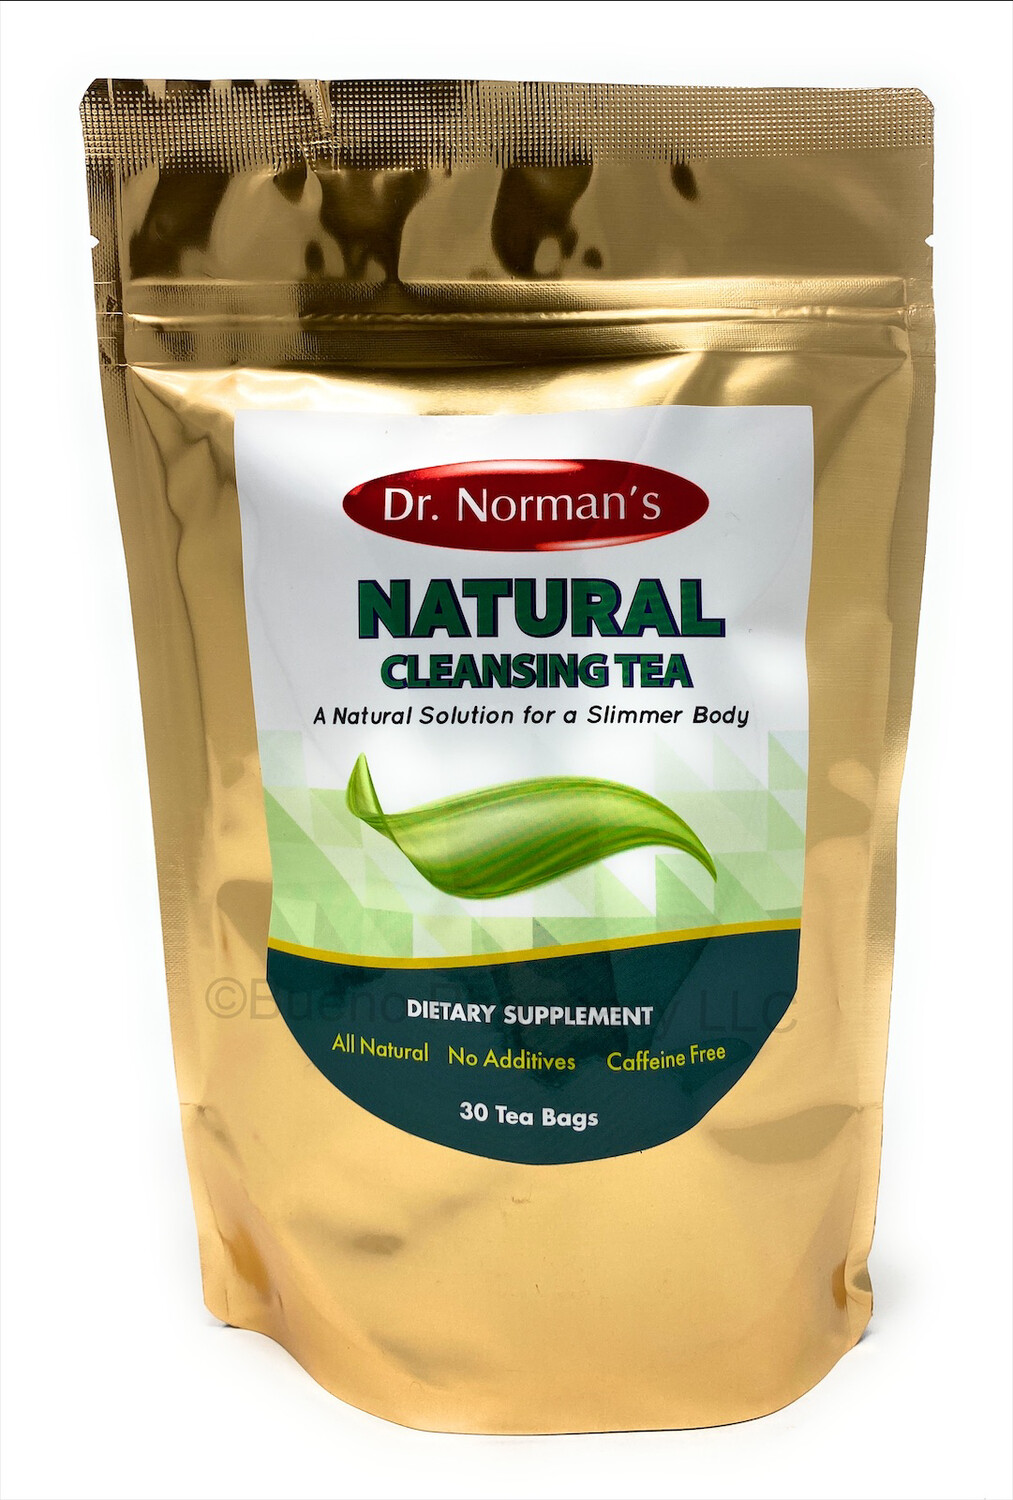 Dr. Norman's Natural Cleansing Tea